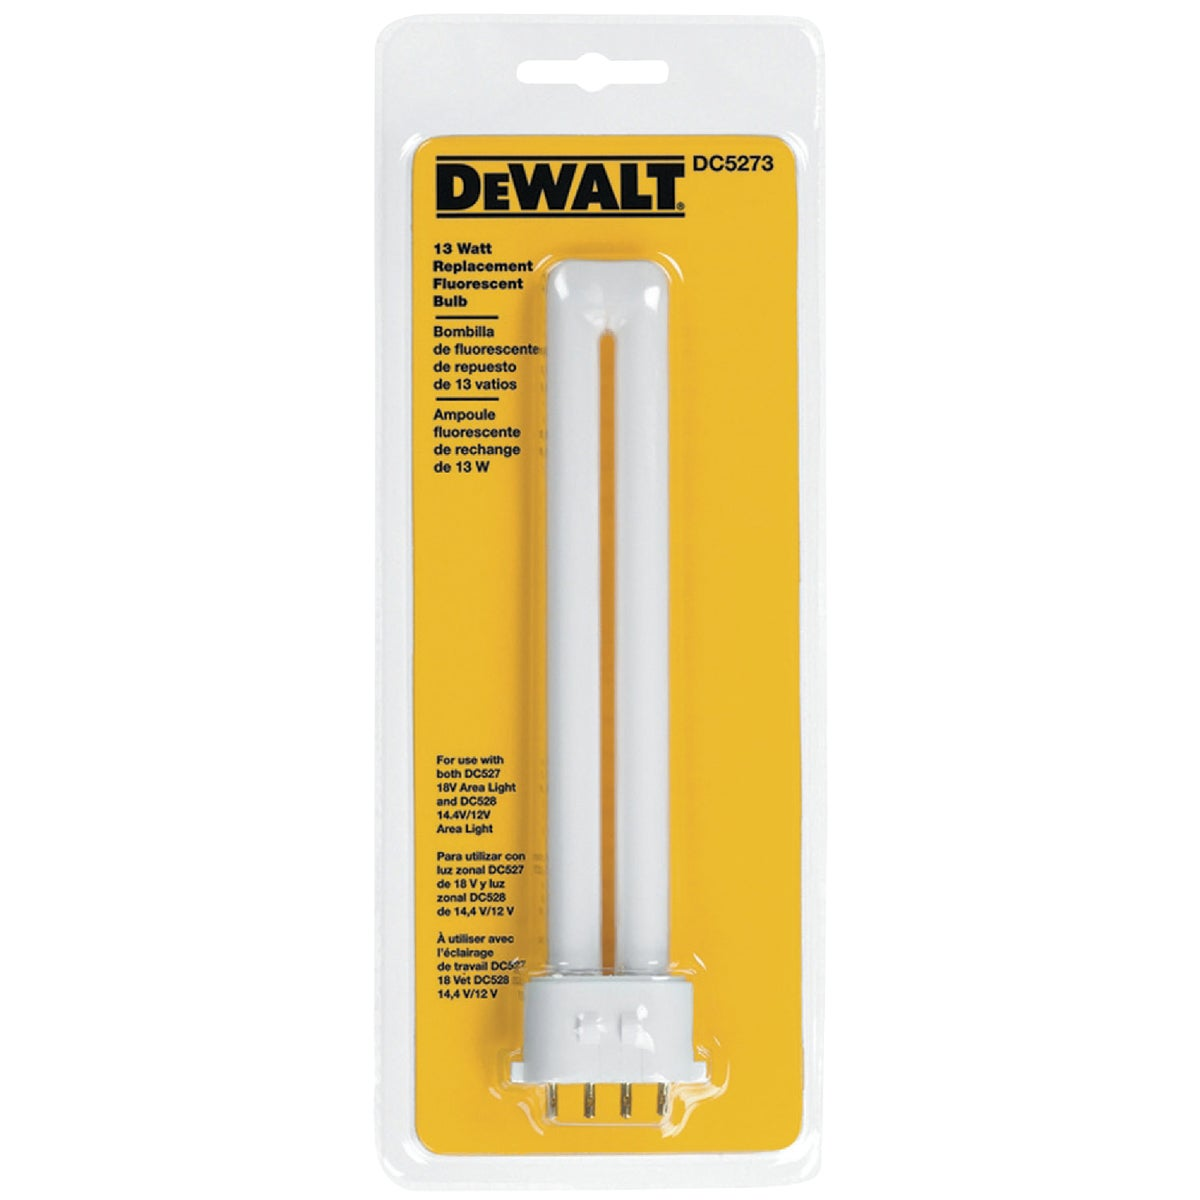 13W REPLACEMENT BULB - DC5273 by DeWalt